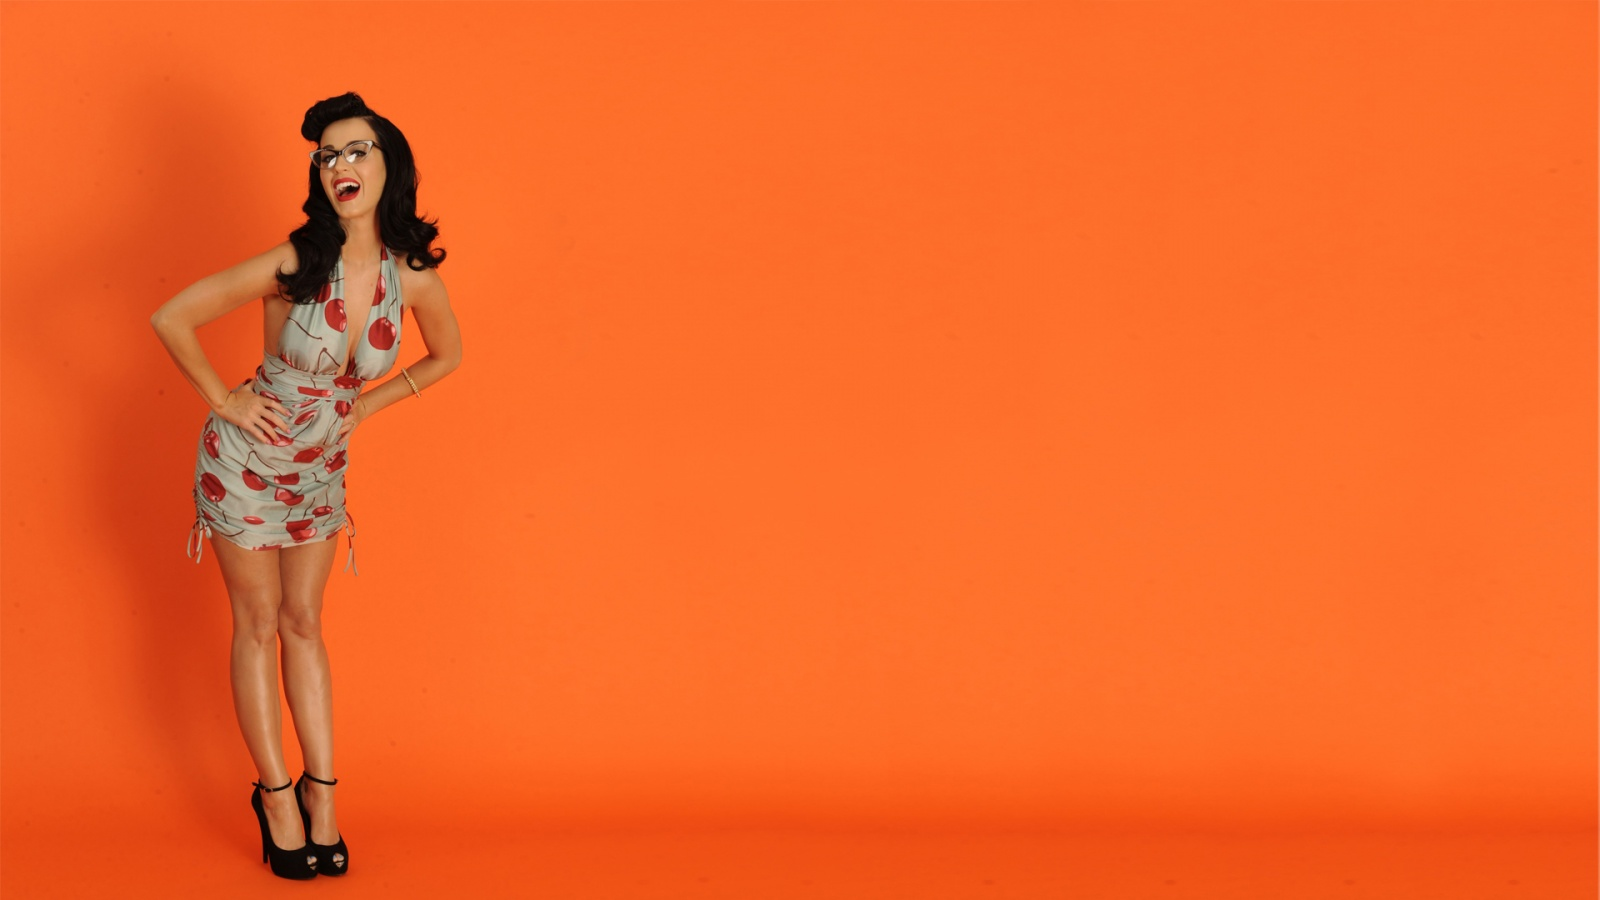 Katy Perry Orange Background Wallpapers   1600x900   168400 1600x900